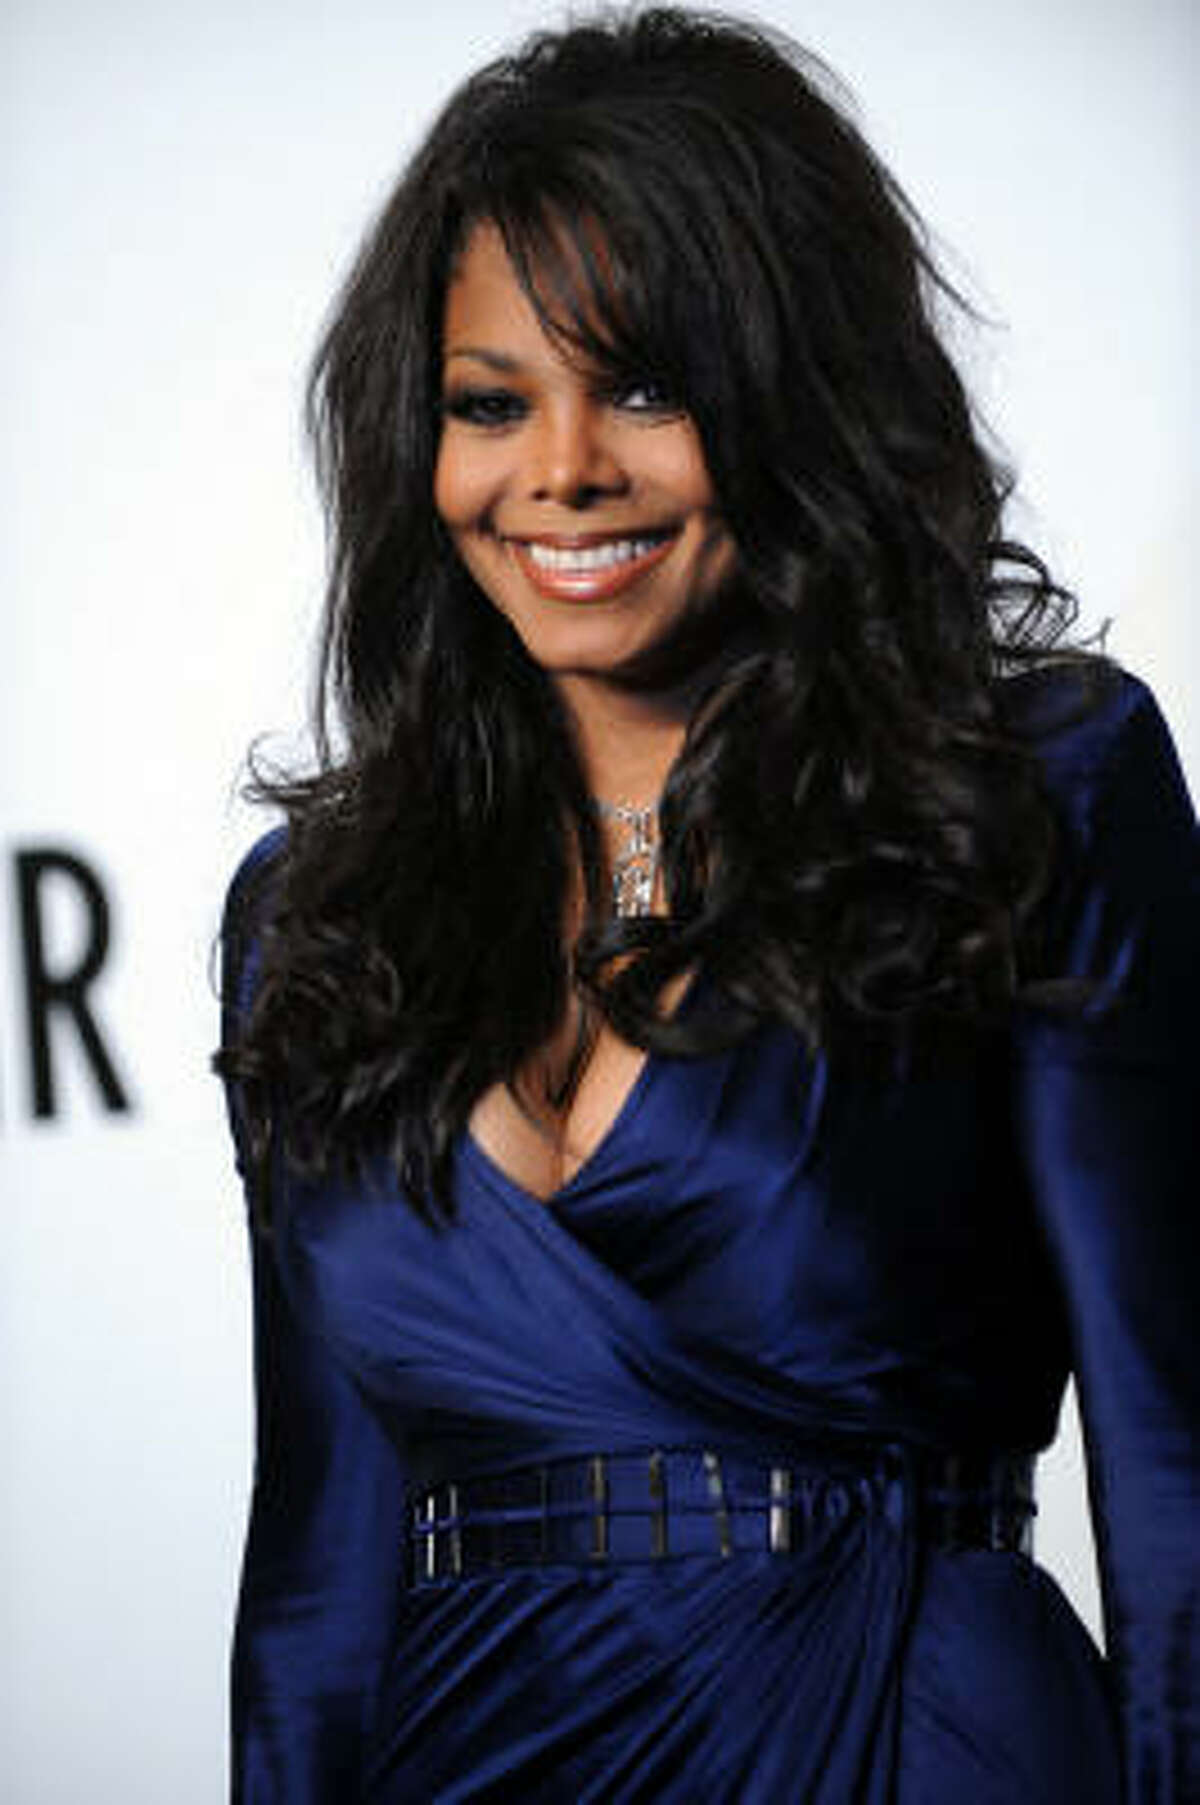 Janet Jackson subtly wears the retro look.